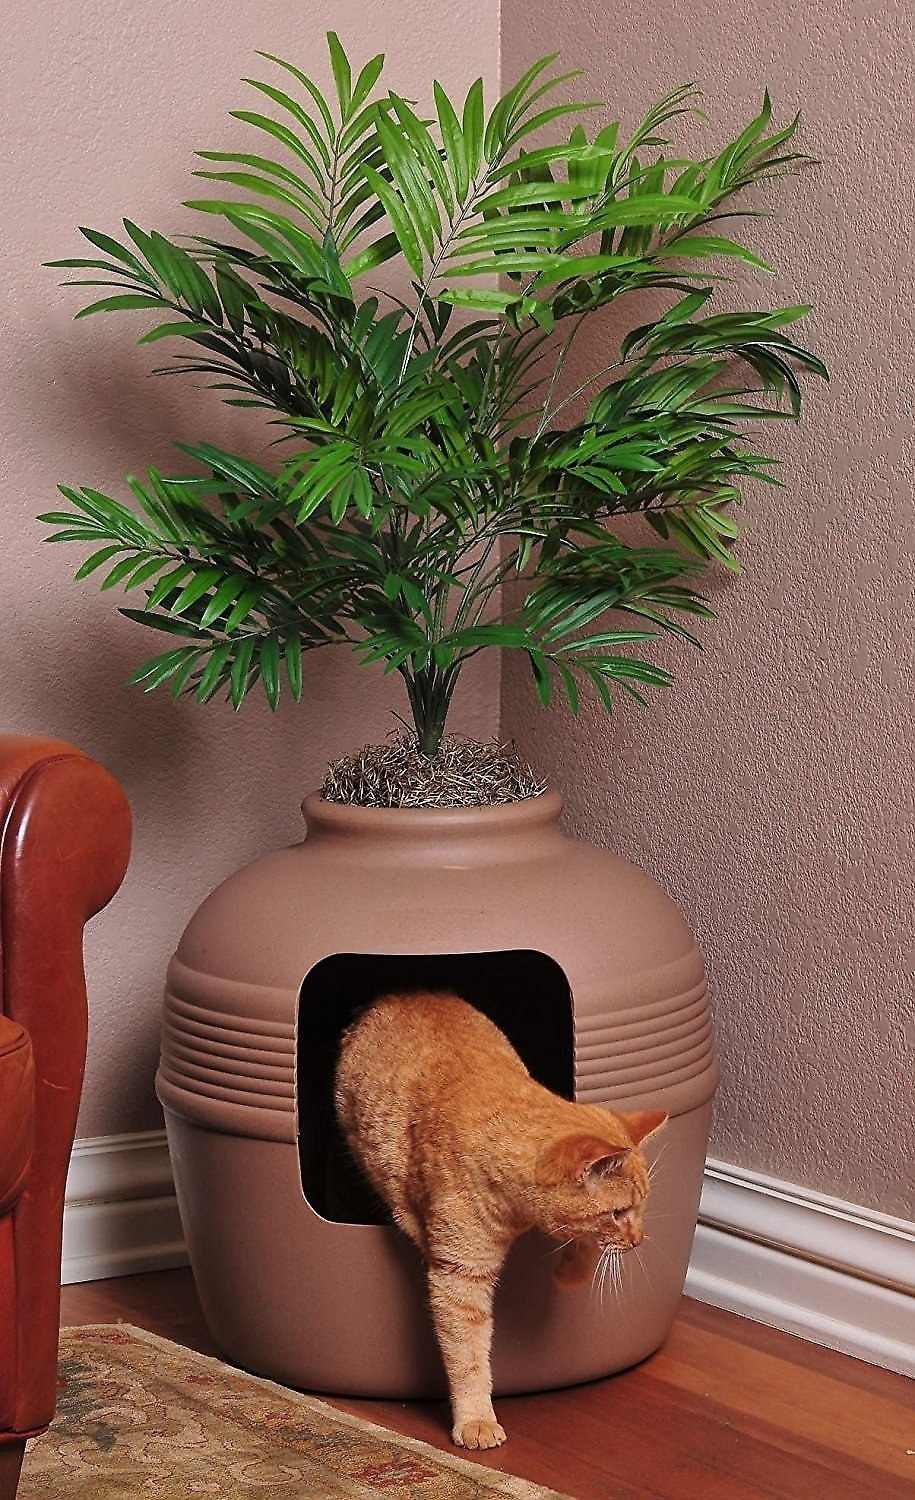 A cat leaving the litter box that's designed to look like a planter with a faux plant on top